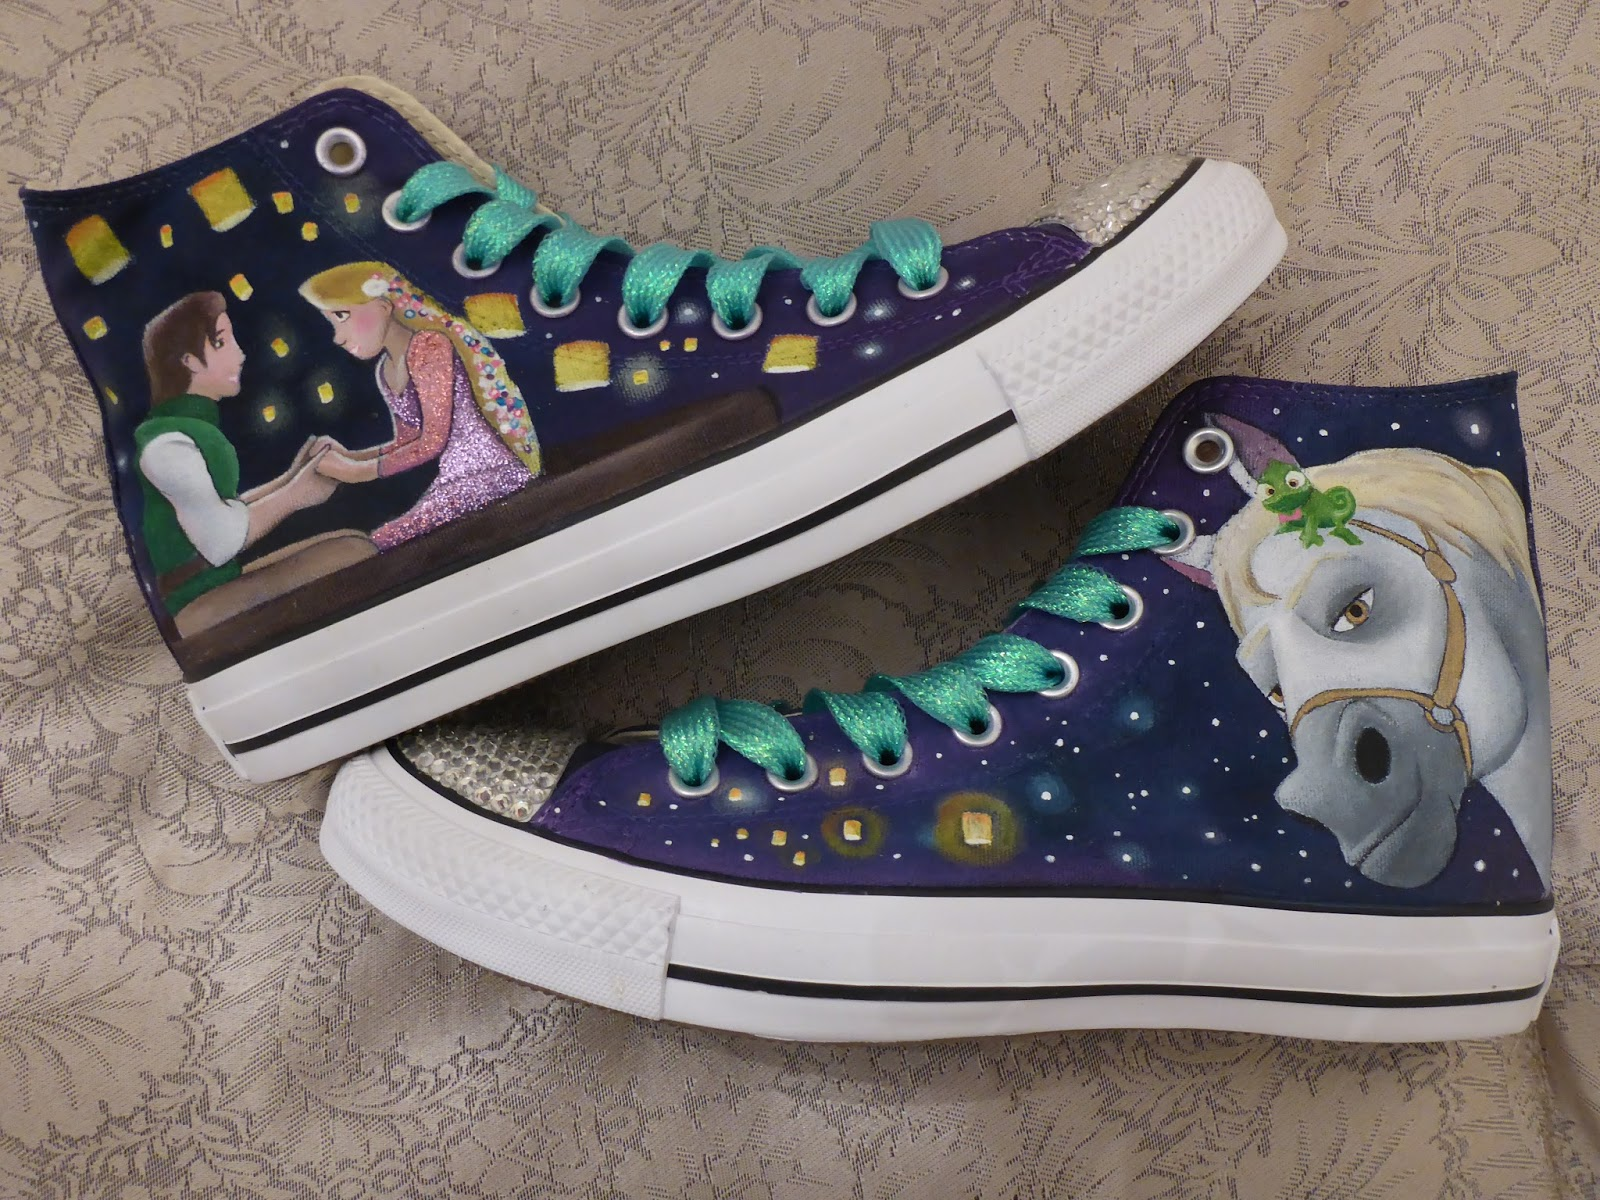 Look Good Shoes Trolls Disney Converse All Star Style Hi Tops Girls Cartoon Bling Sneakers S1494400000185 Outlet